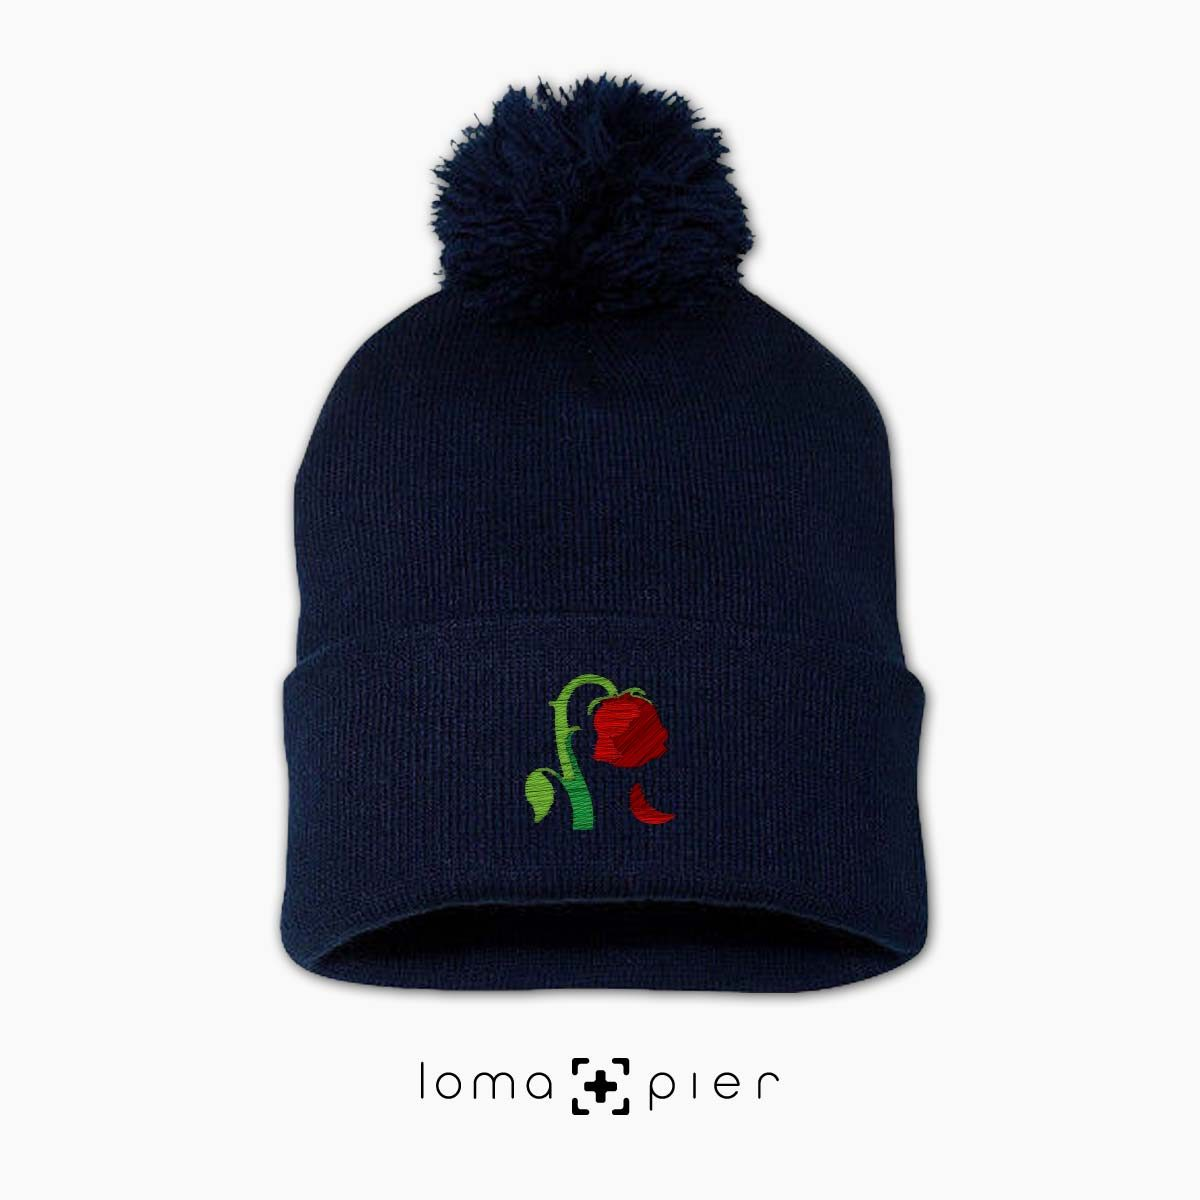 DYING ROSE EMOJI icon embroidered on a navy blue pom pom beanie by loma+pier hat store